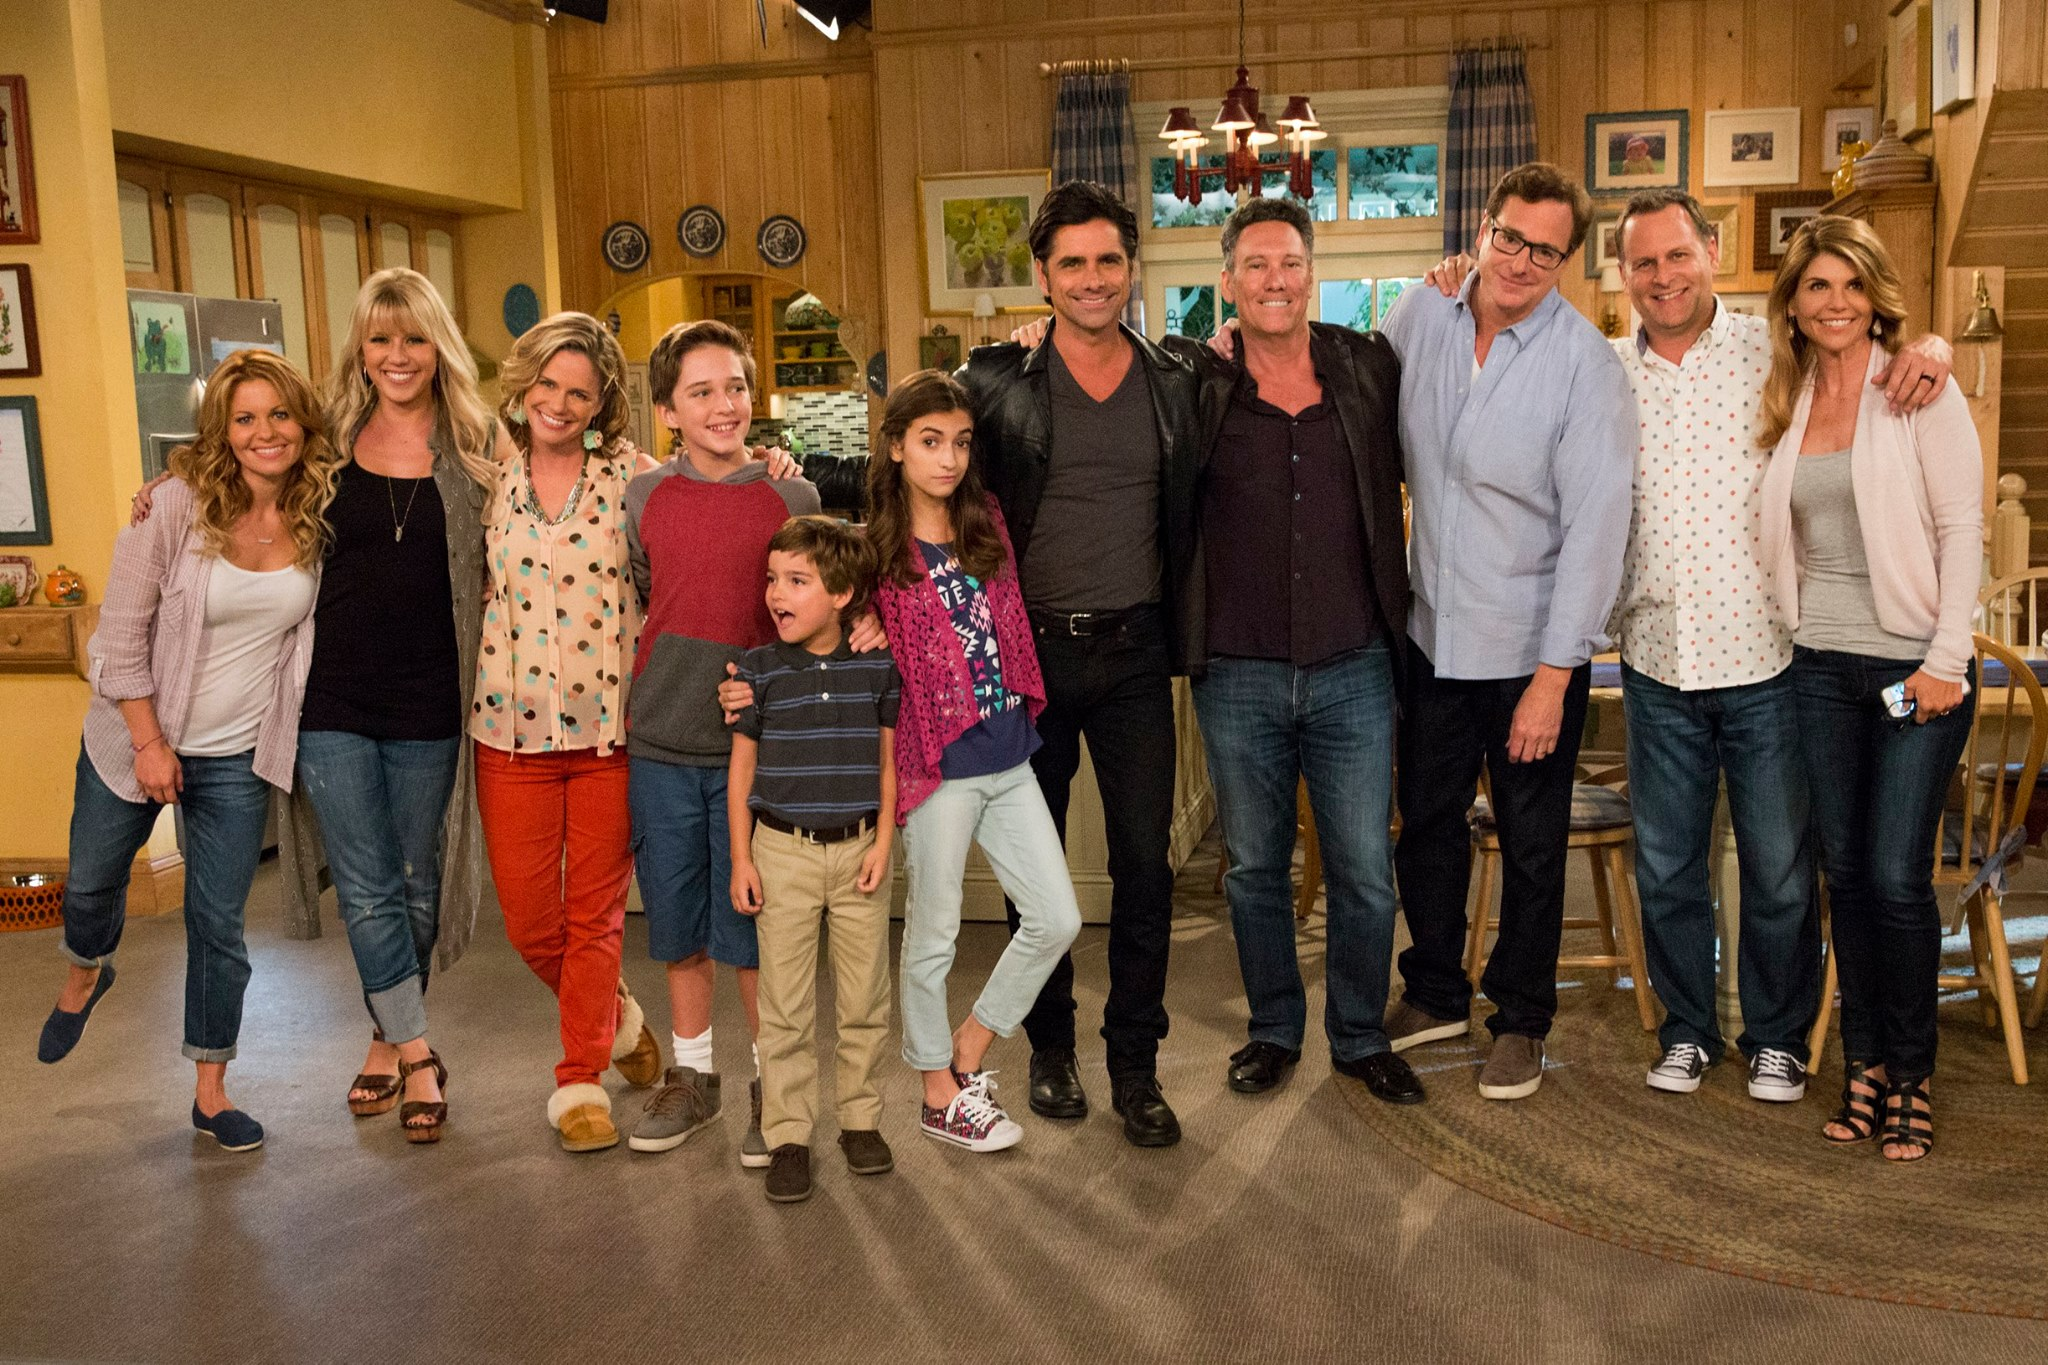 FULLER HOUSE IS COMING BACK!!